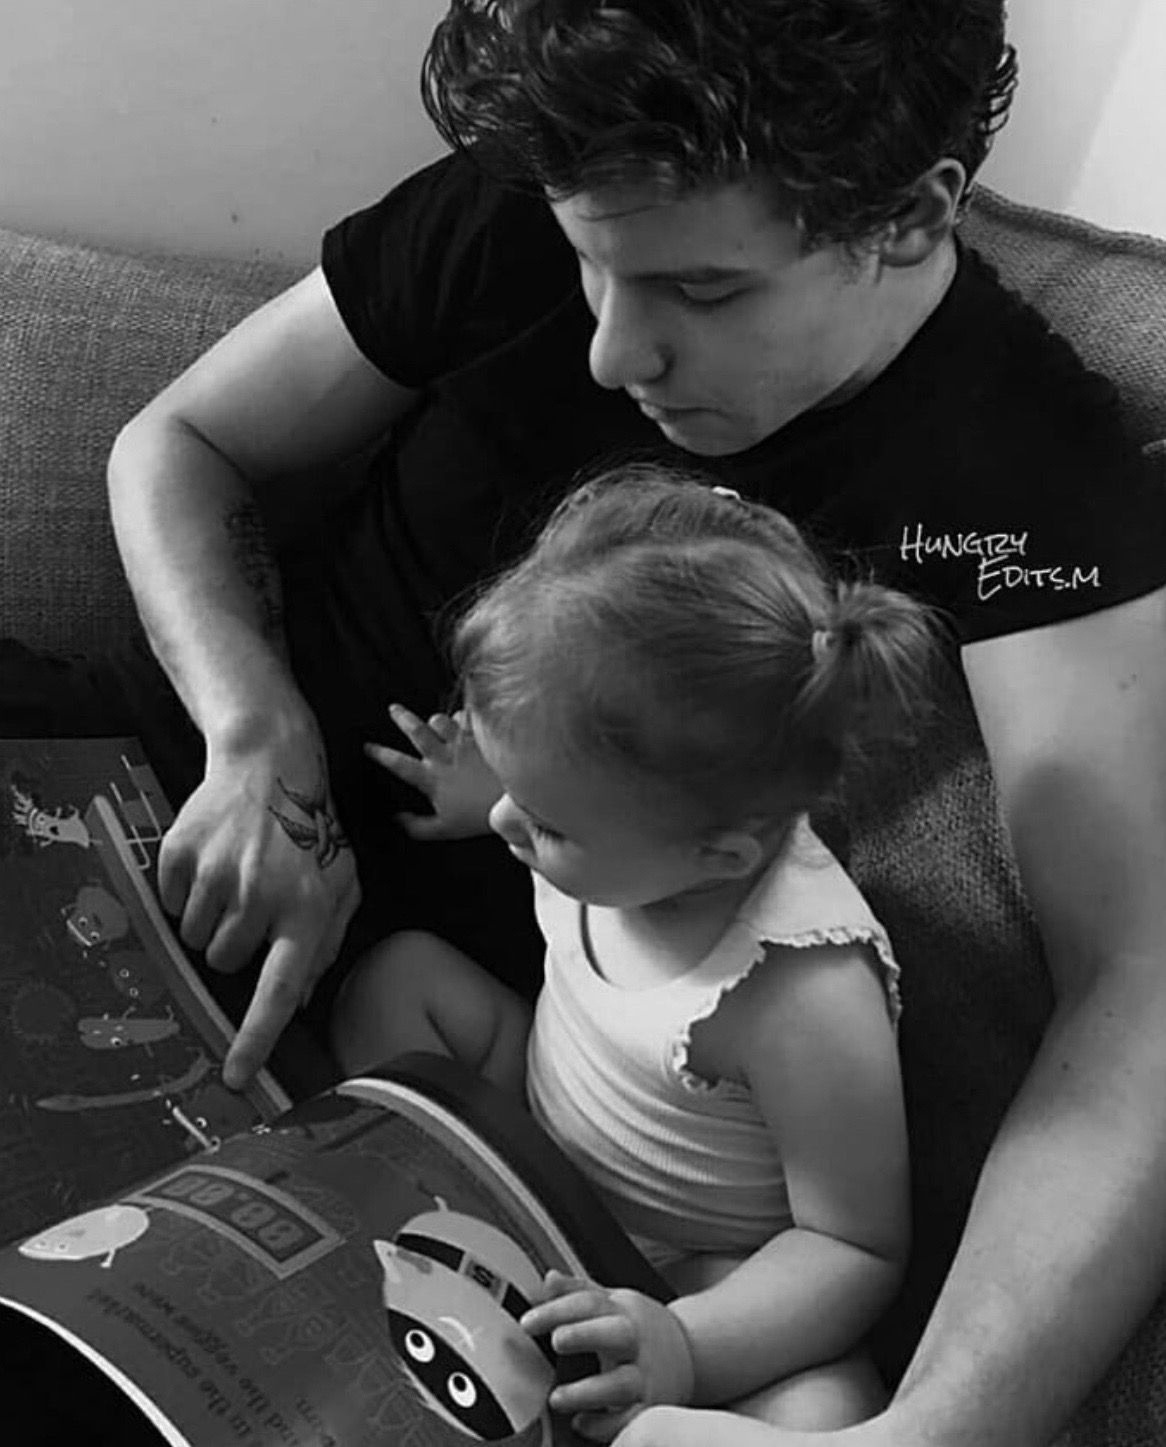 How can he be so hoT🔥 when he looks like a freakin' dad